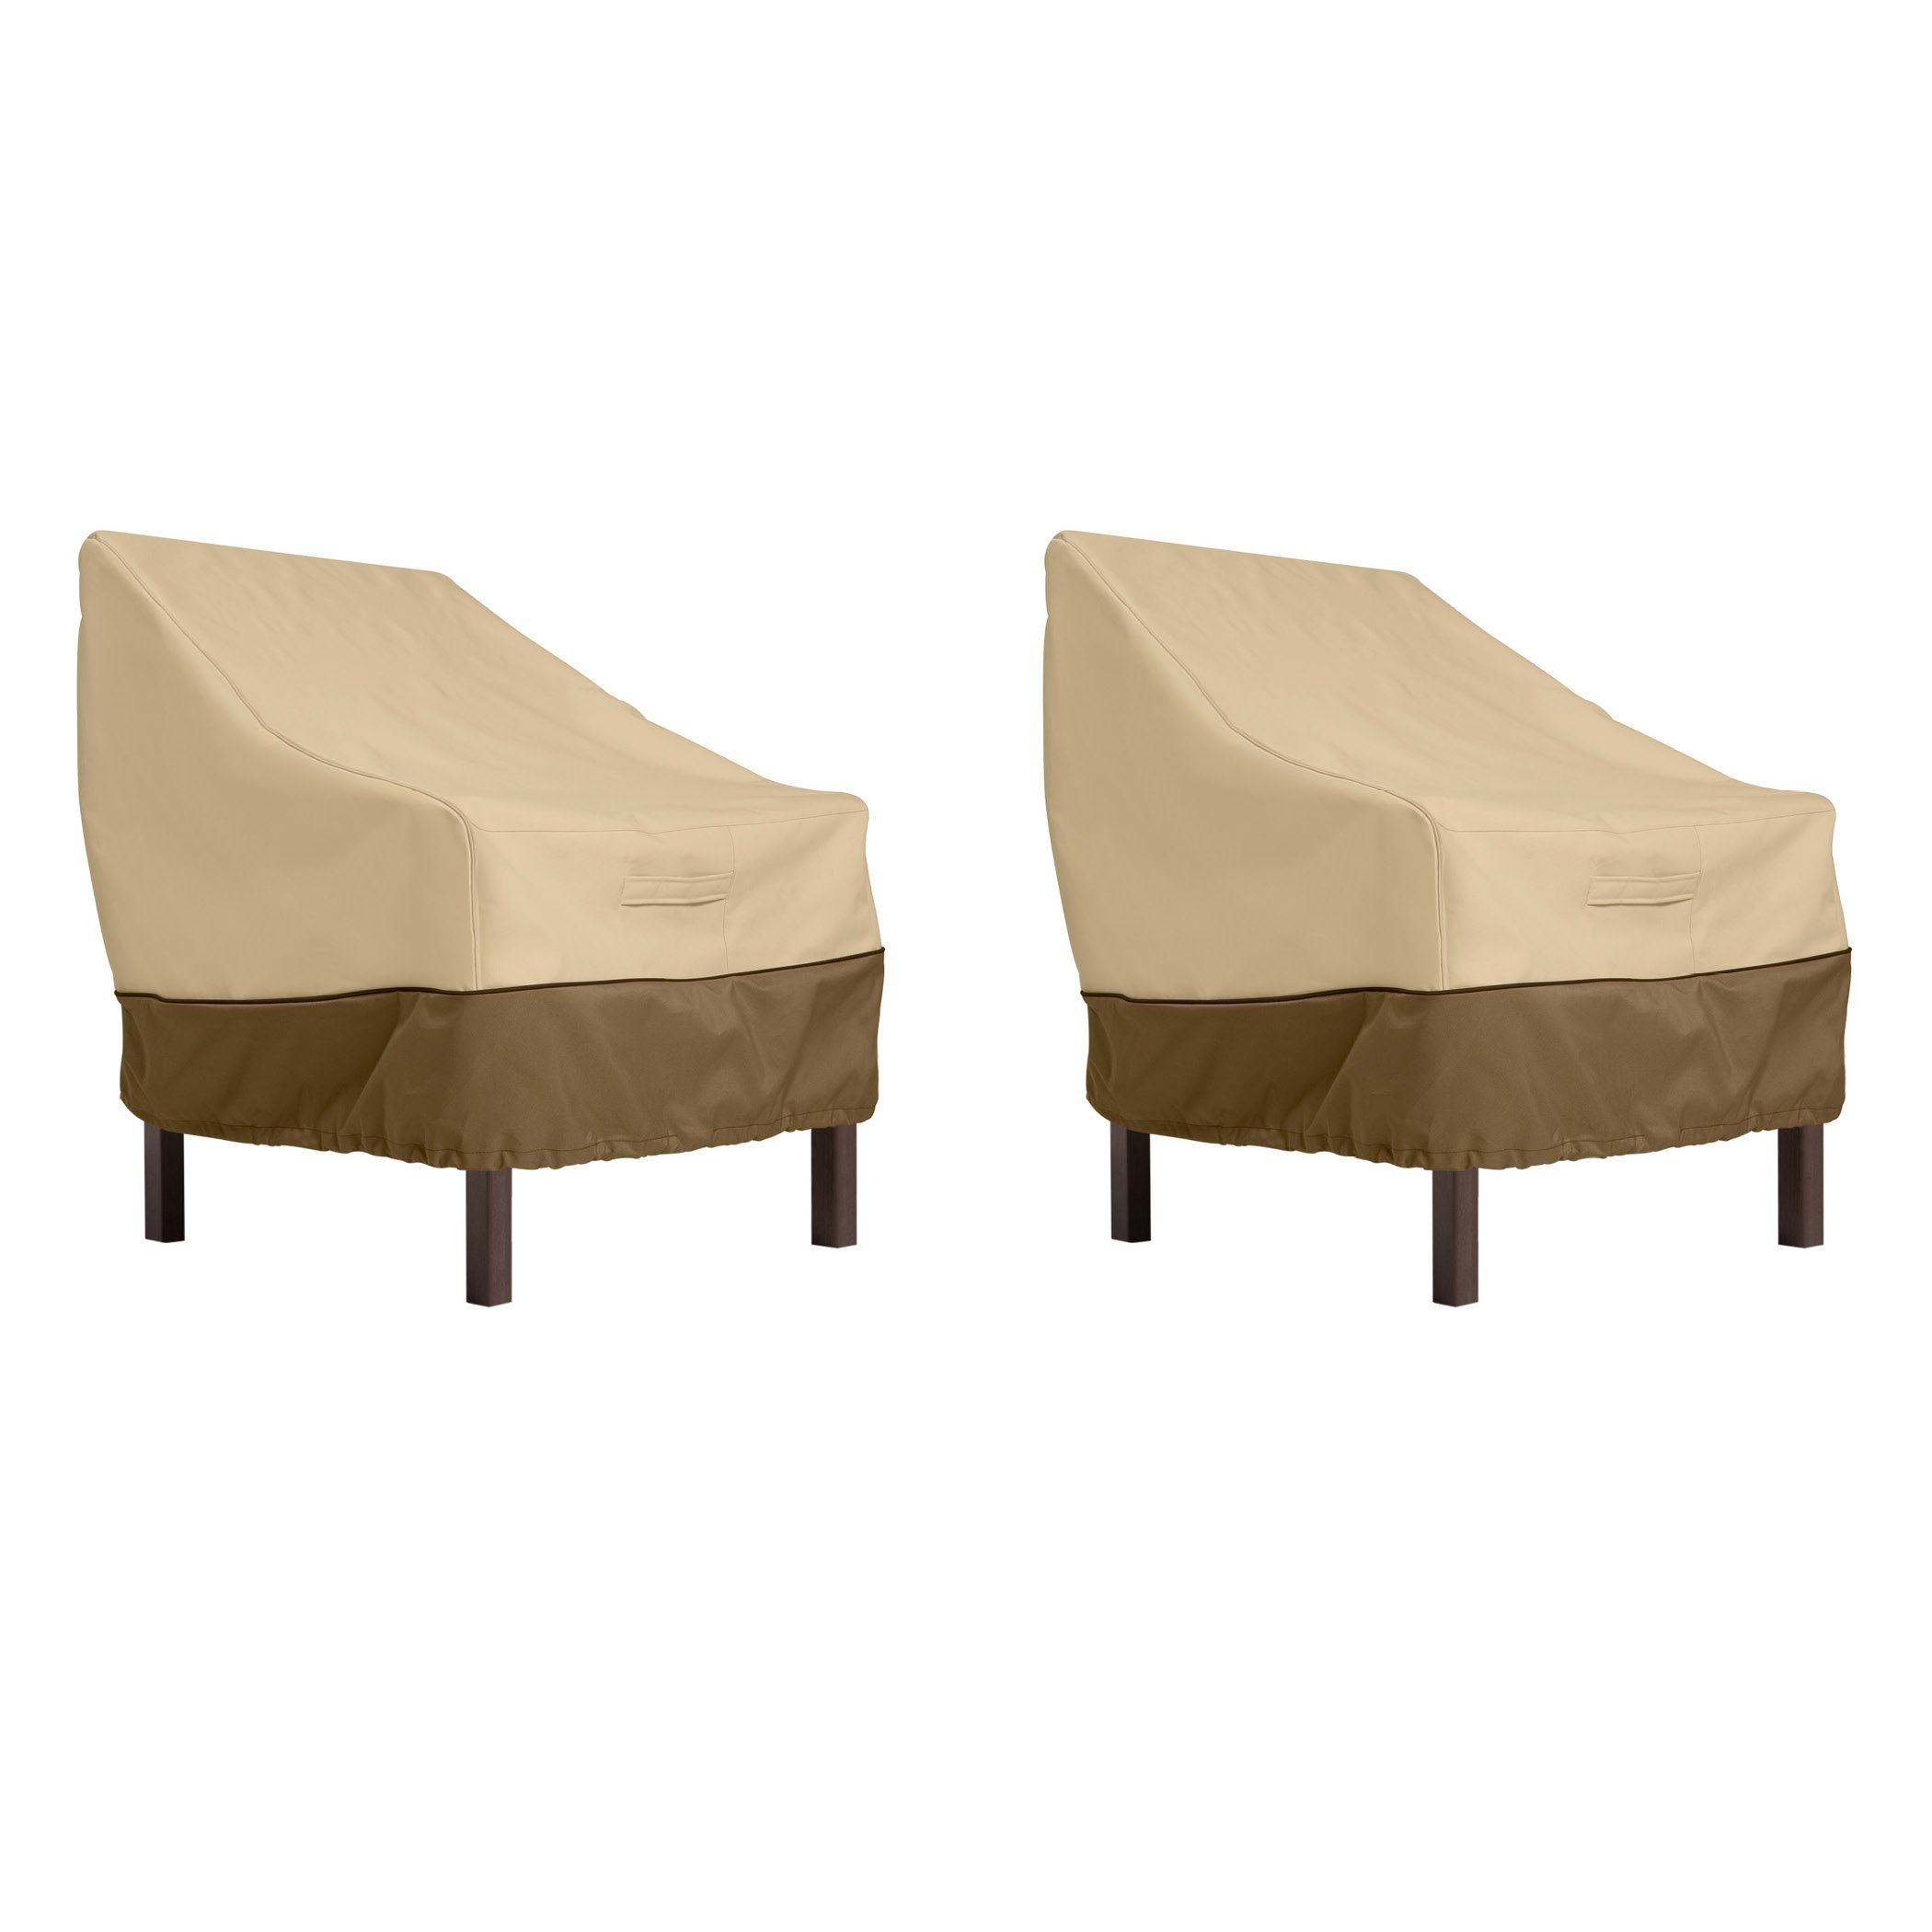 Classic Accessories Veranda Standard Dining Patio Chair Cover (2-Pack)